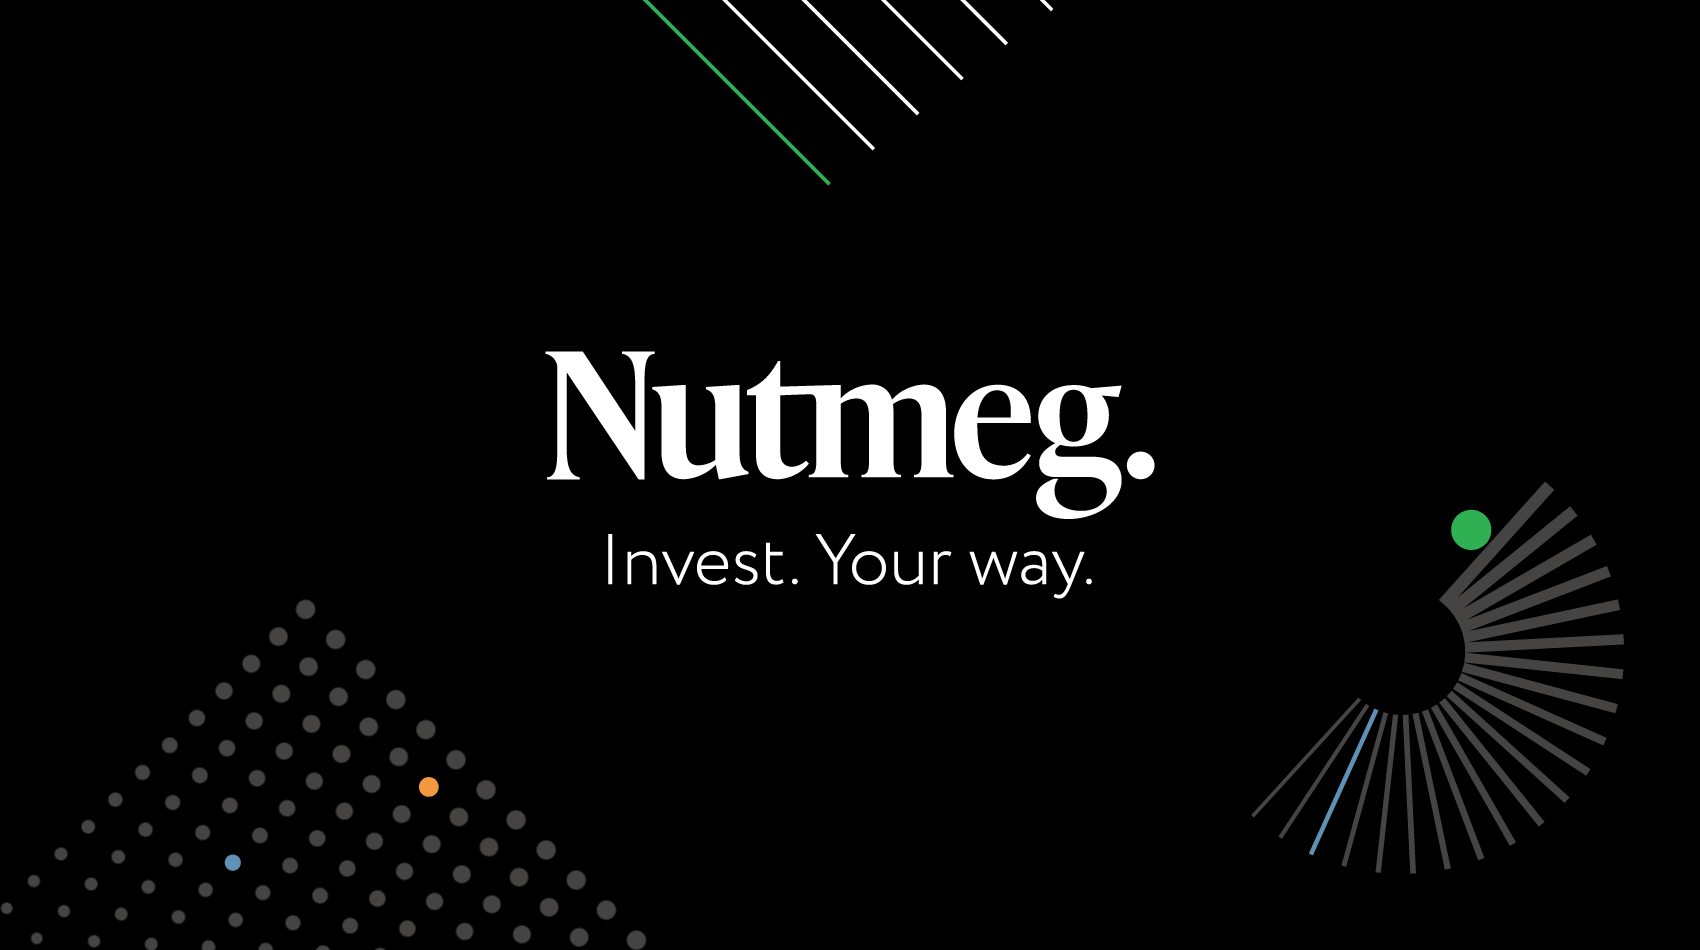 Nutmeg. Invest. Your way